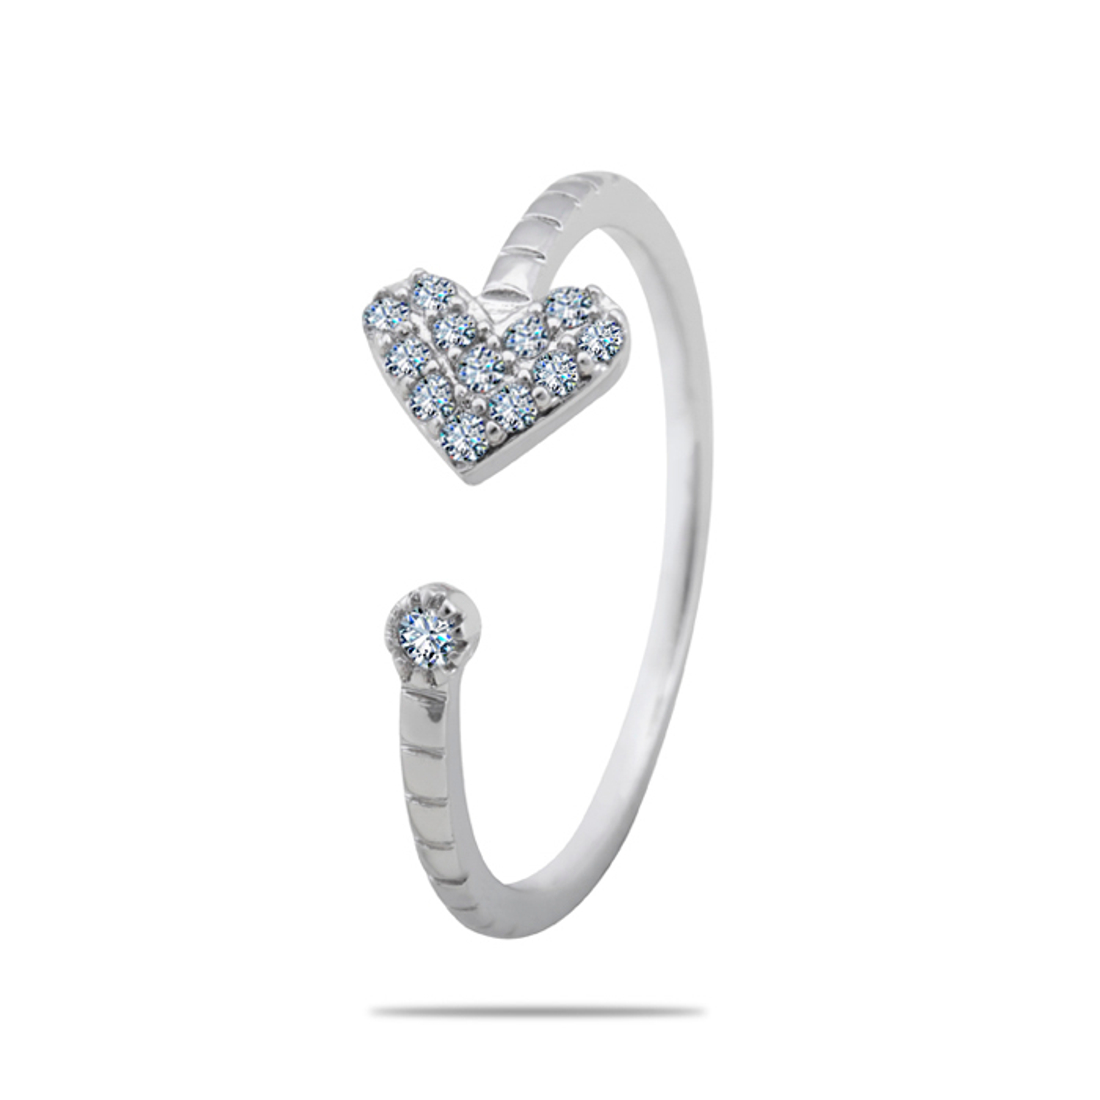 Silver Shine 92.5 Sterling Silver Heart With Diamonds Open Silver Ring  for Women & Girls